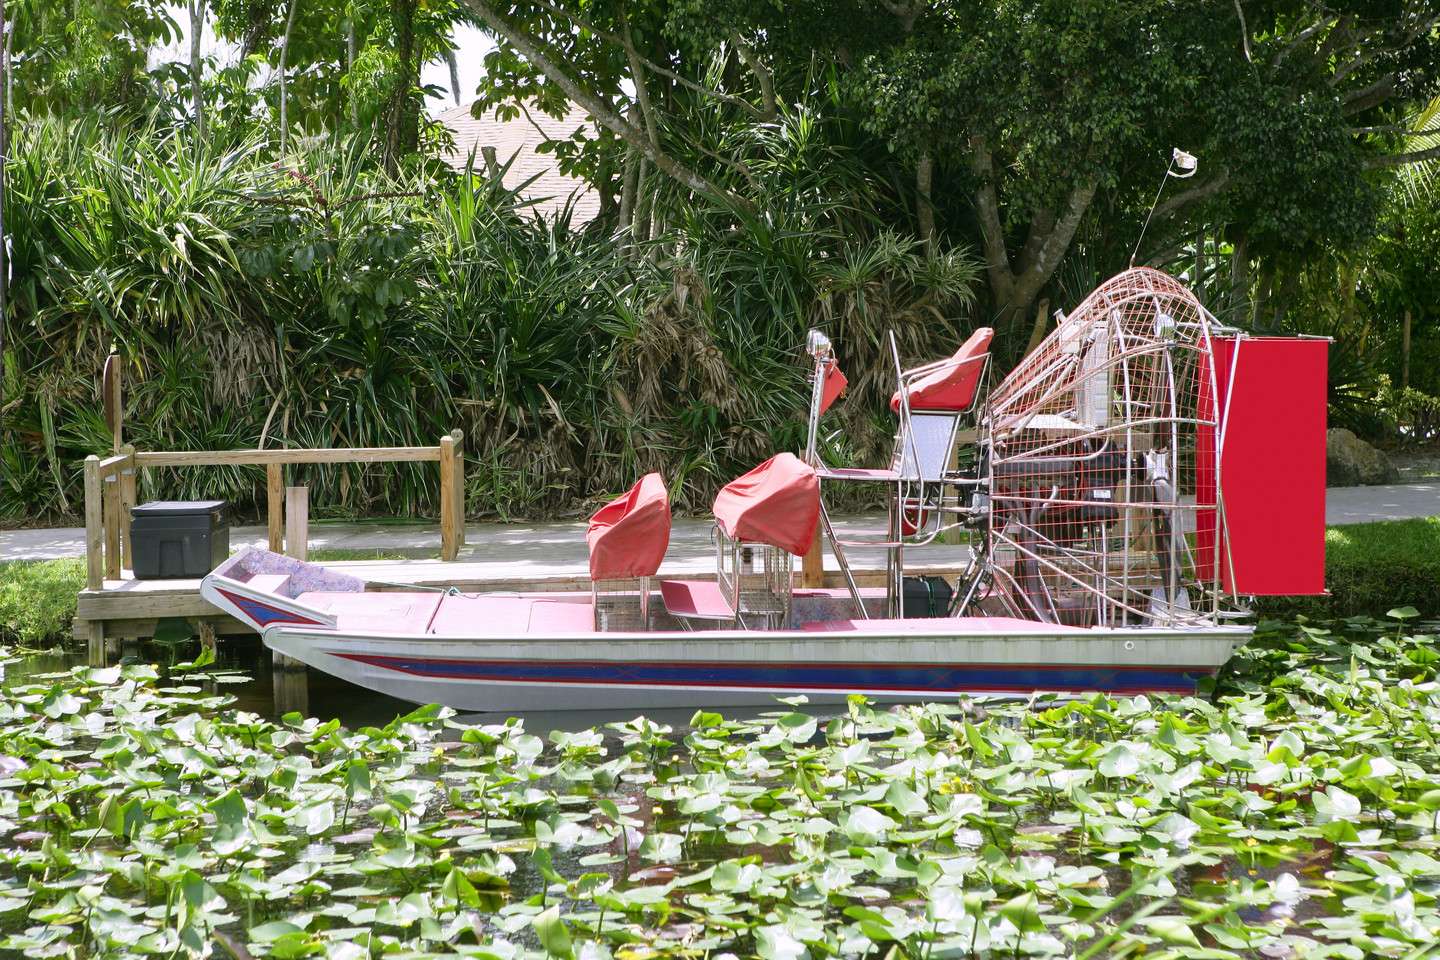 an airboat